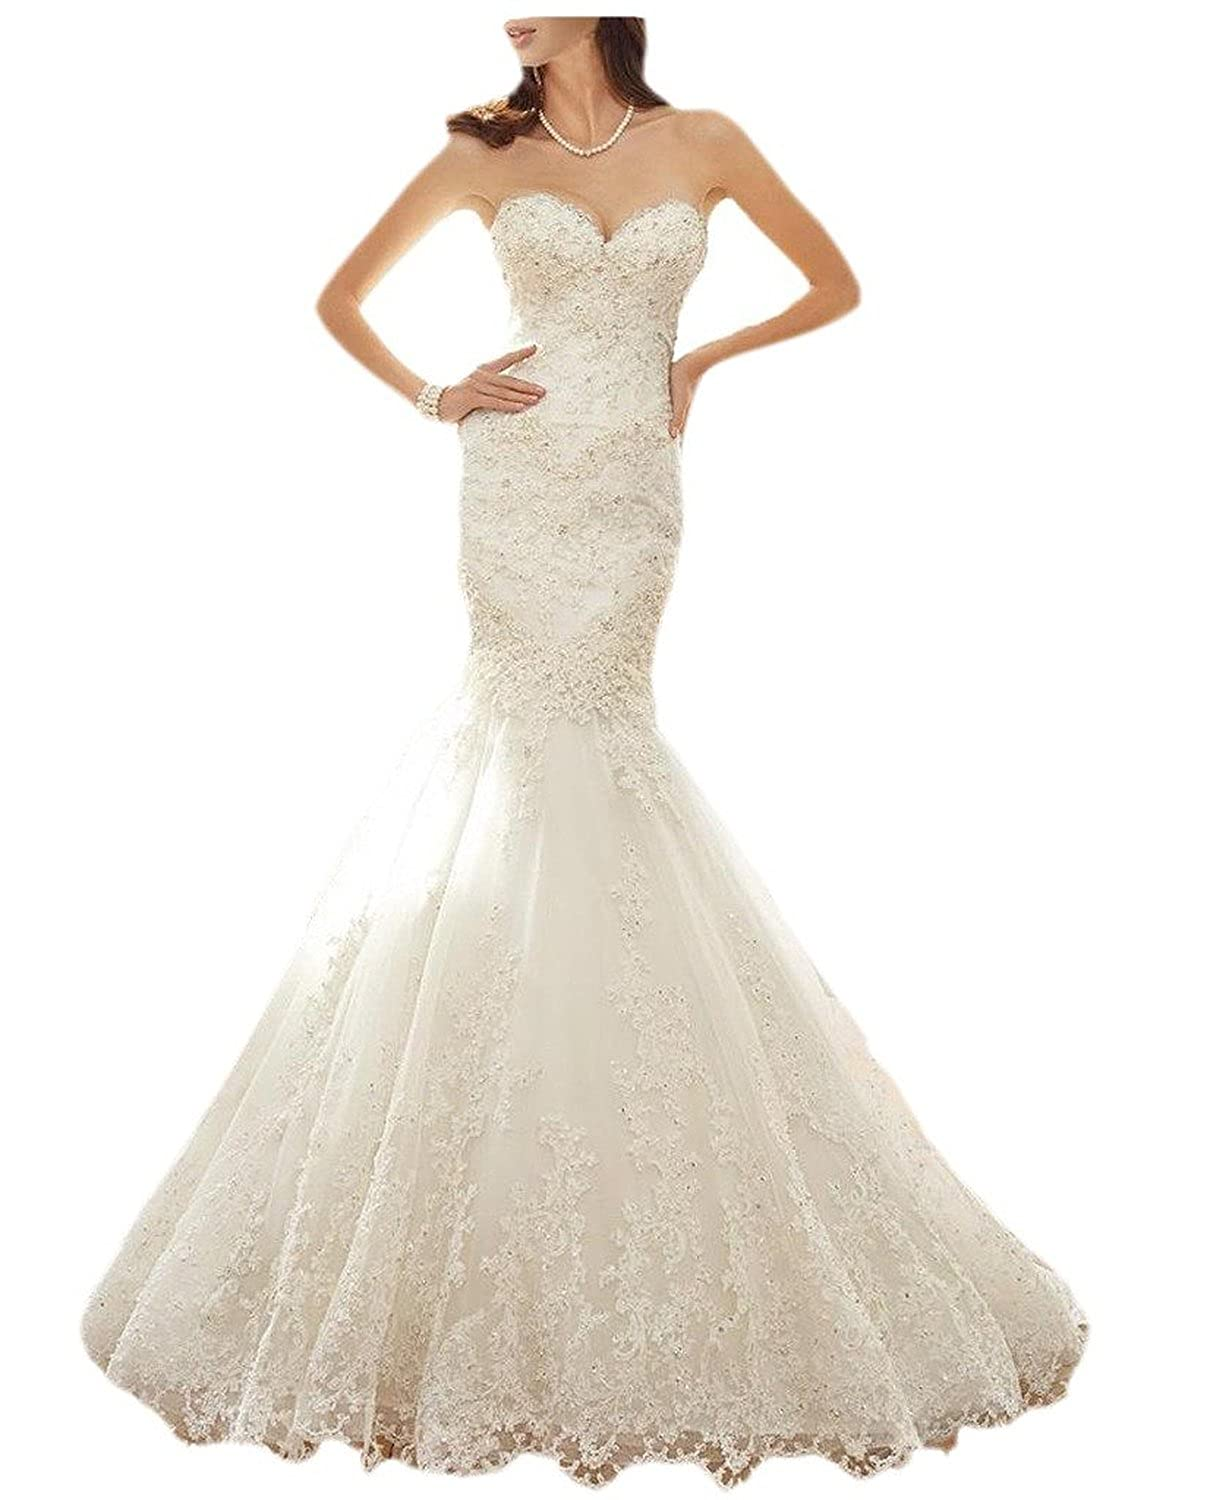 Fanciest Womens 2016 Lace Mermaid Wedding Dresses For Bride Bridal Gowns White: Amazon.co.uk: Clothing